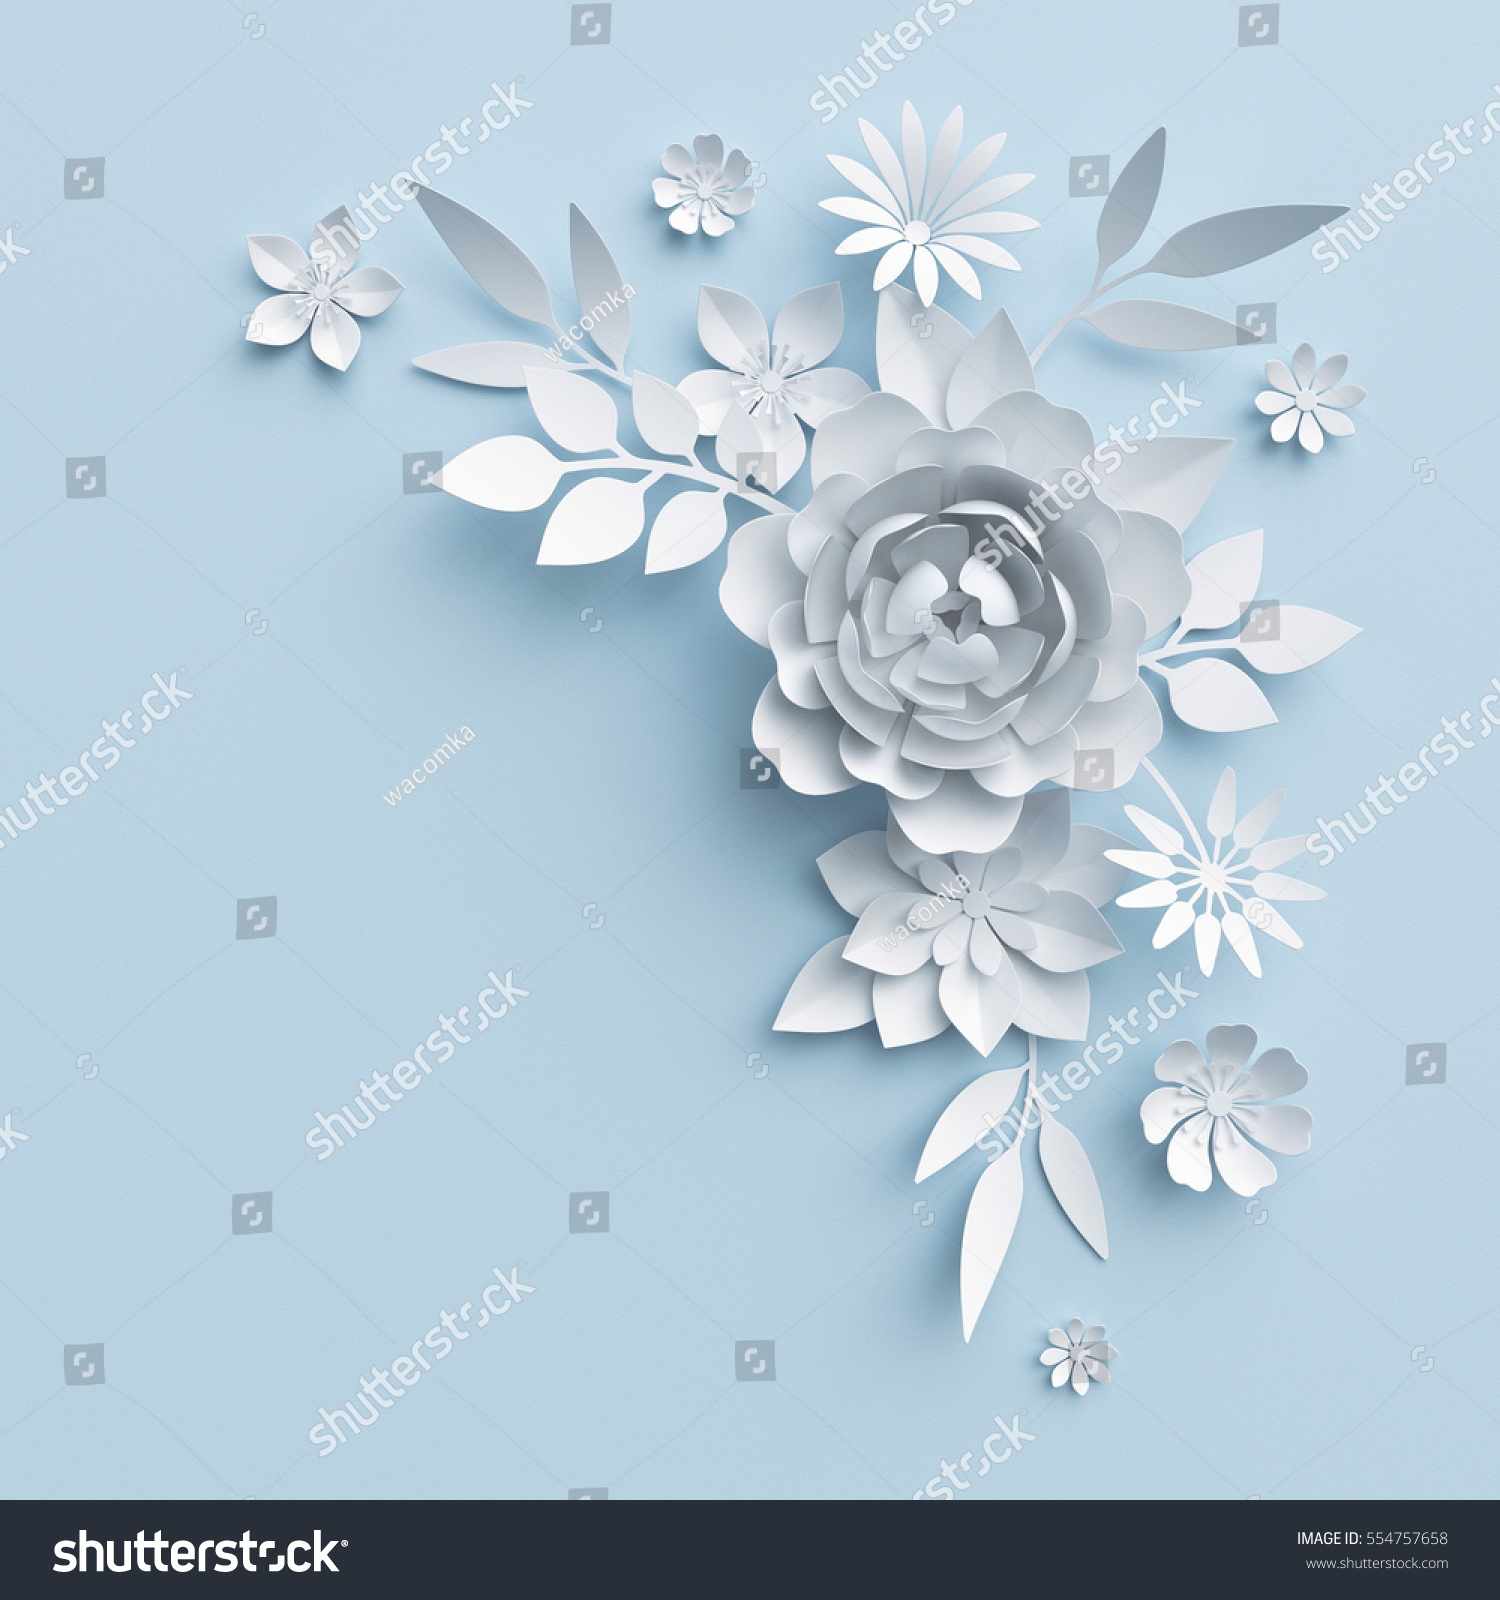 3 D Render Digital Illustration White Paper Stock Illustration